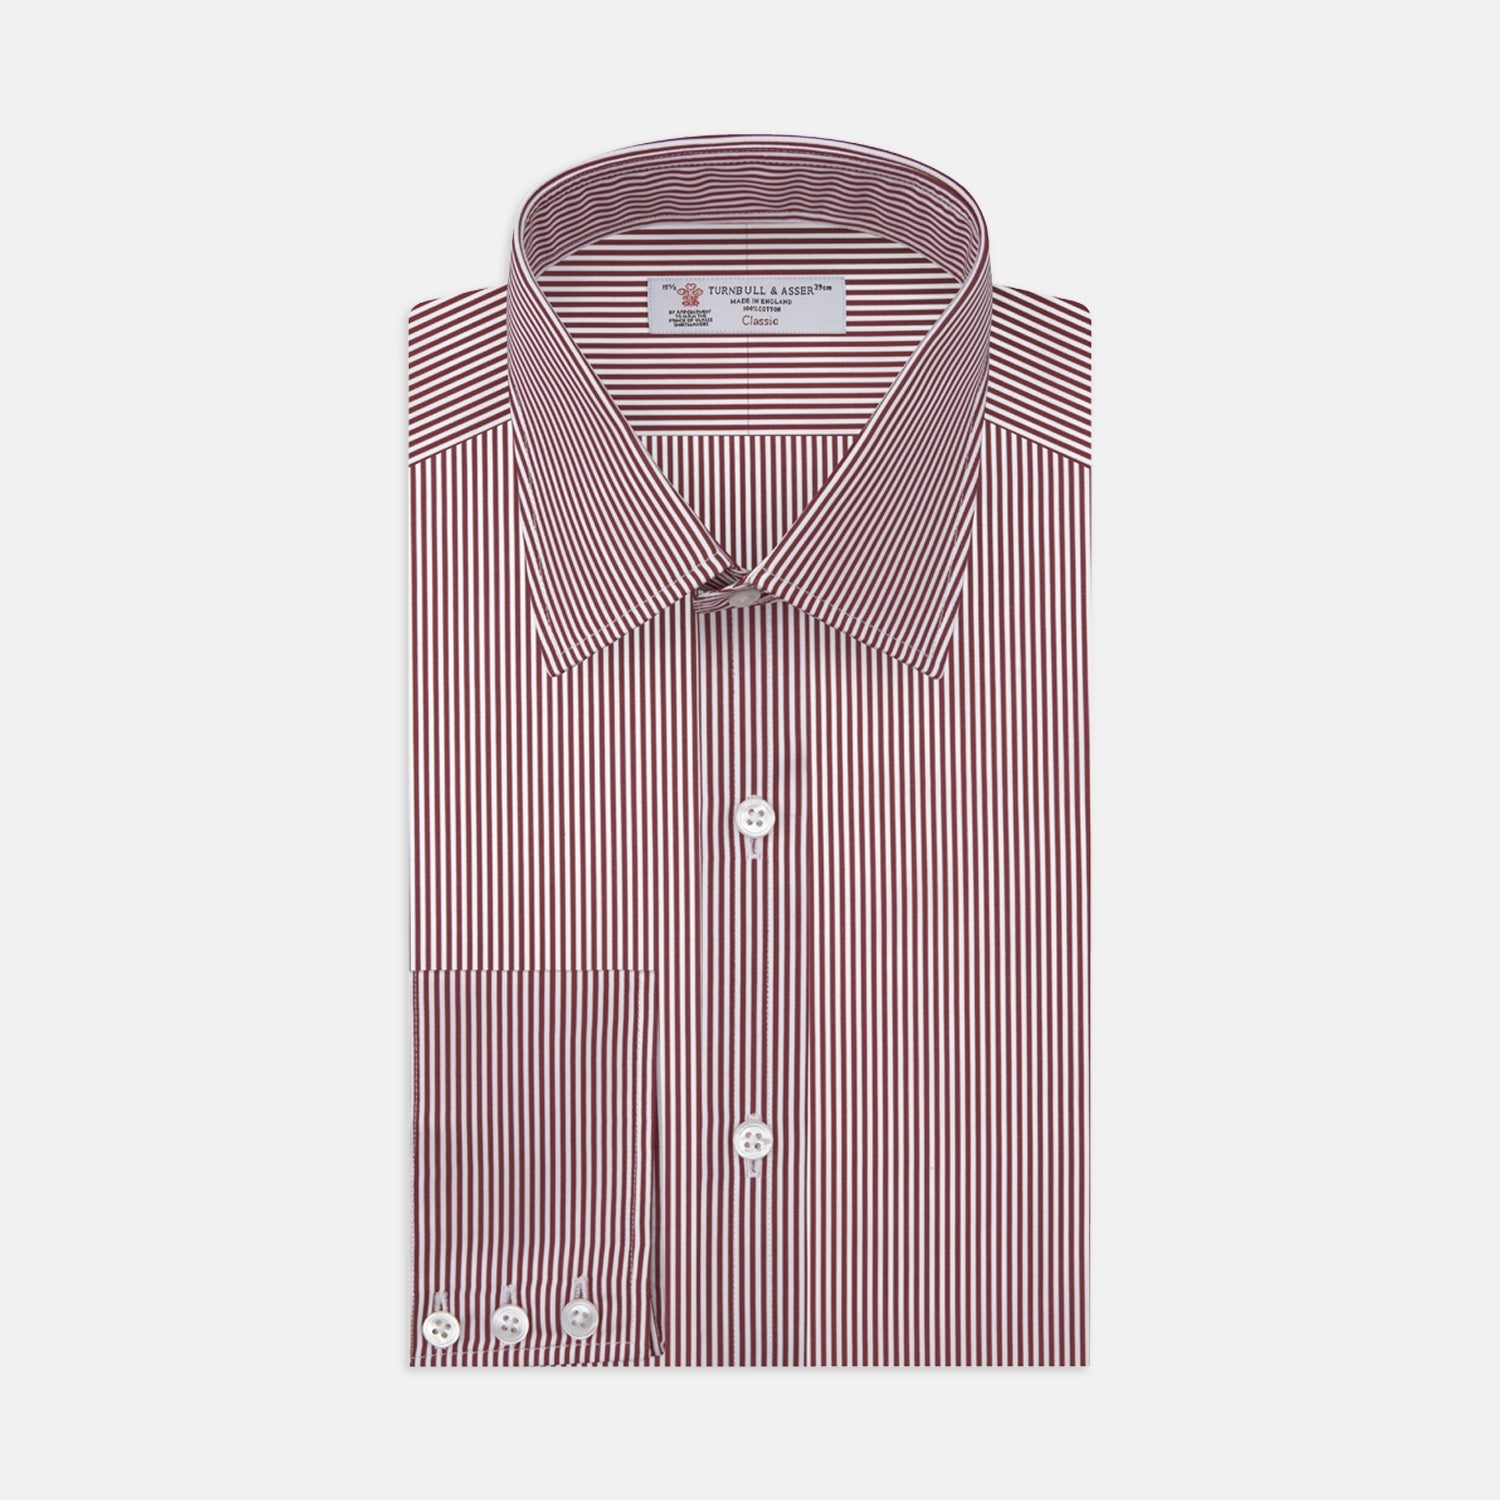 White and Burgundy Stripe Cotton Shirt with T&A Collar and 3-Button Cuffs - 18.5 from Turnbull & Asser